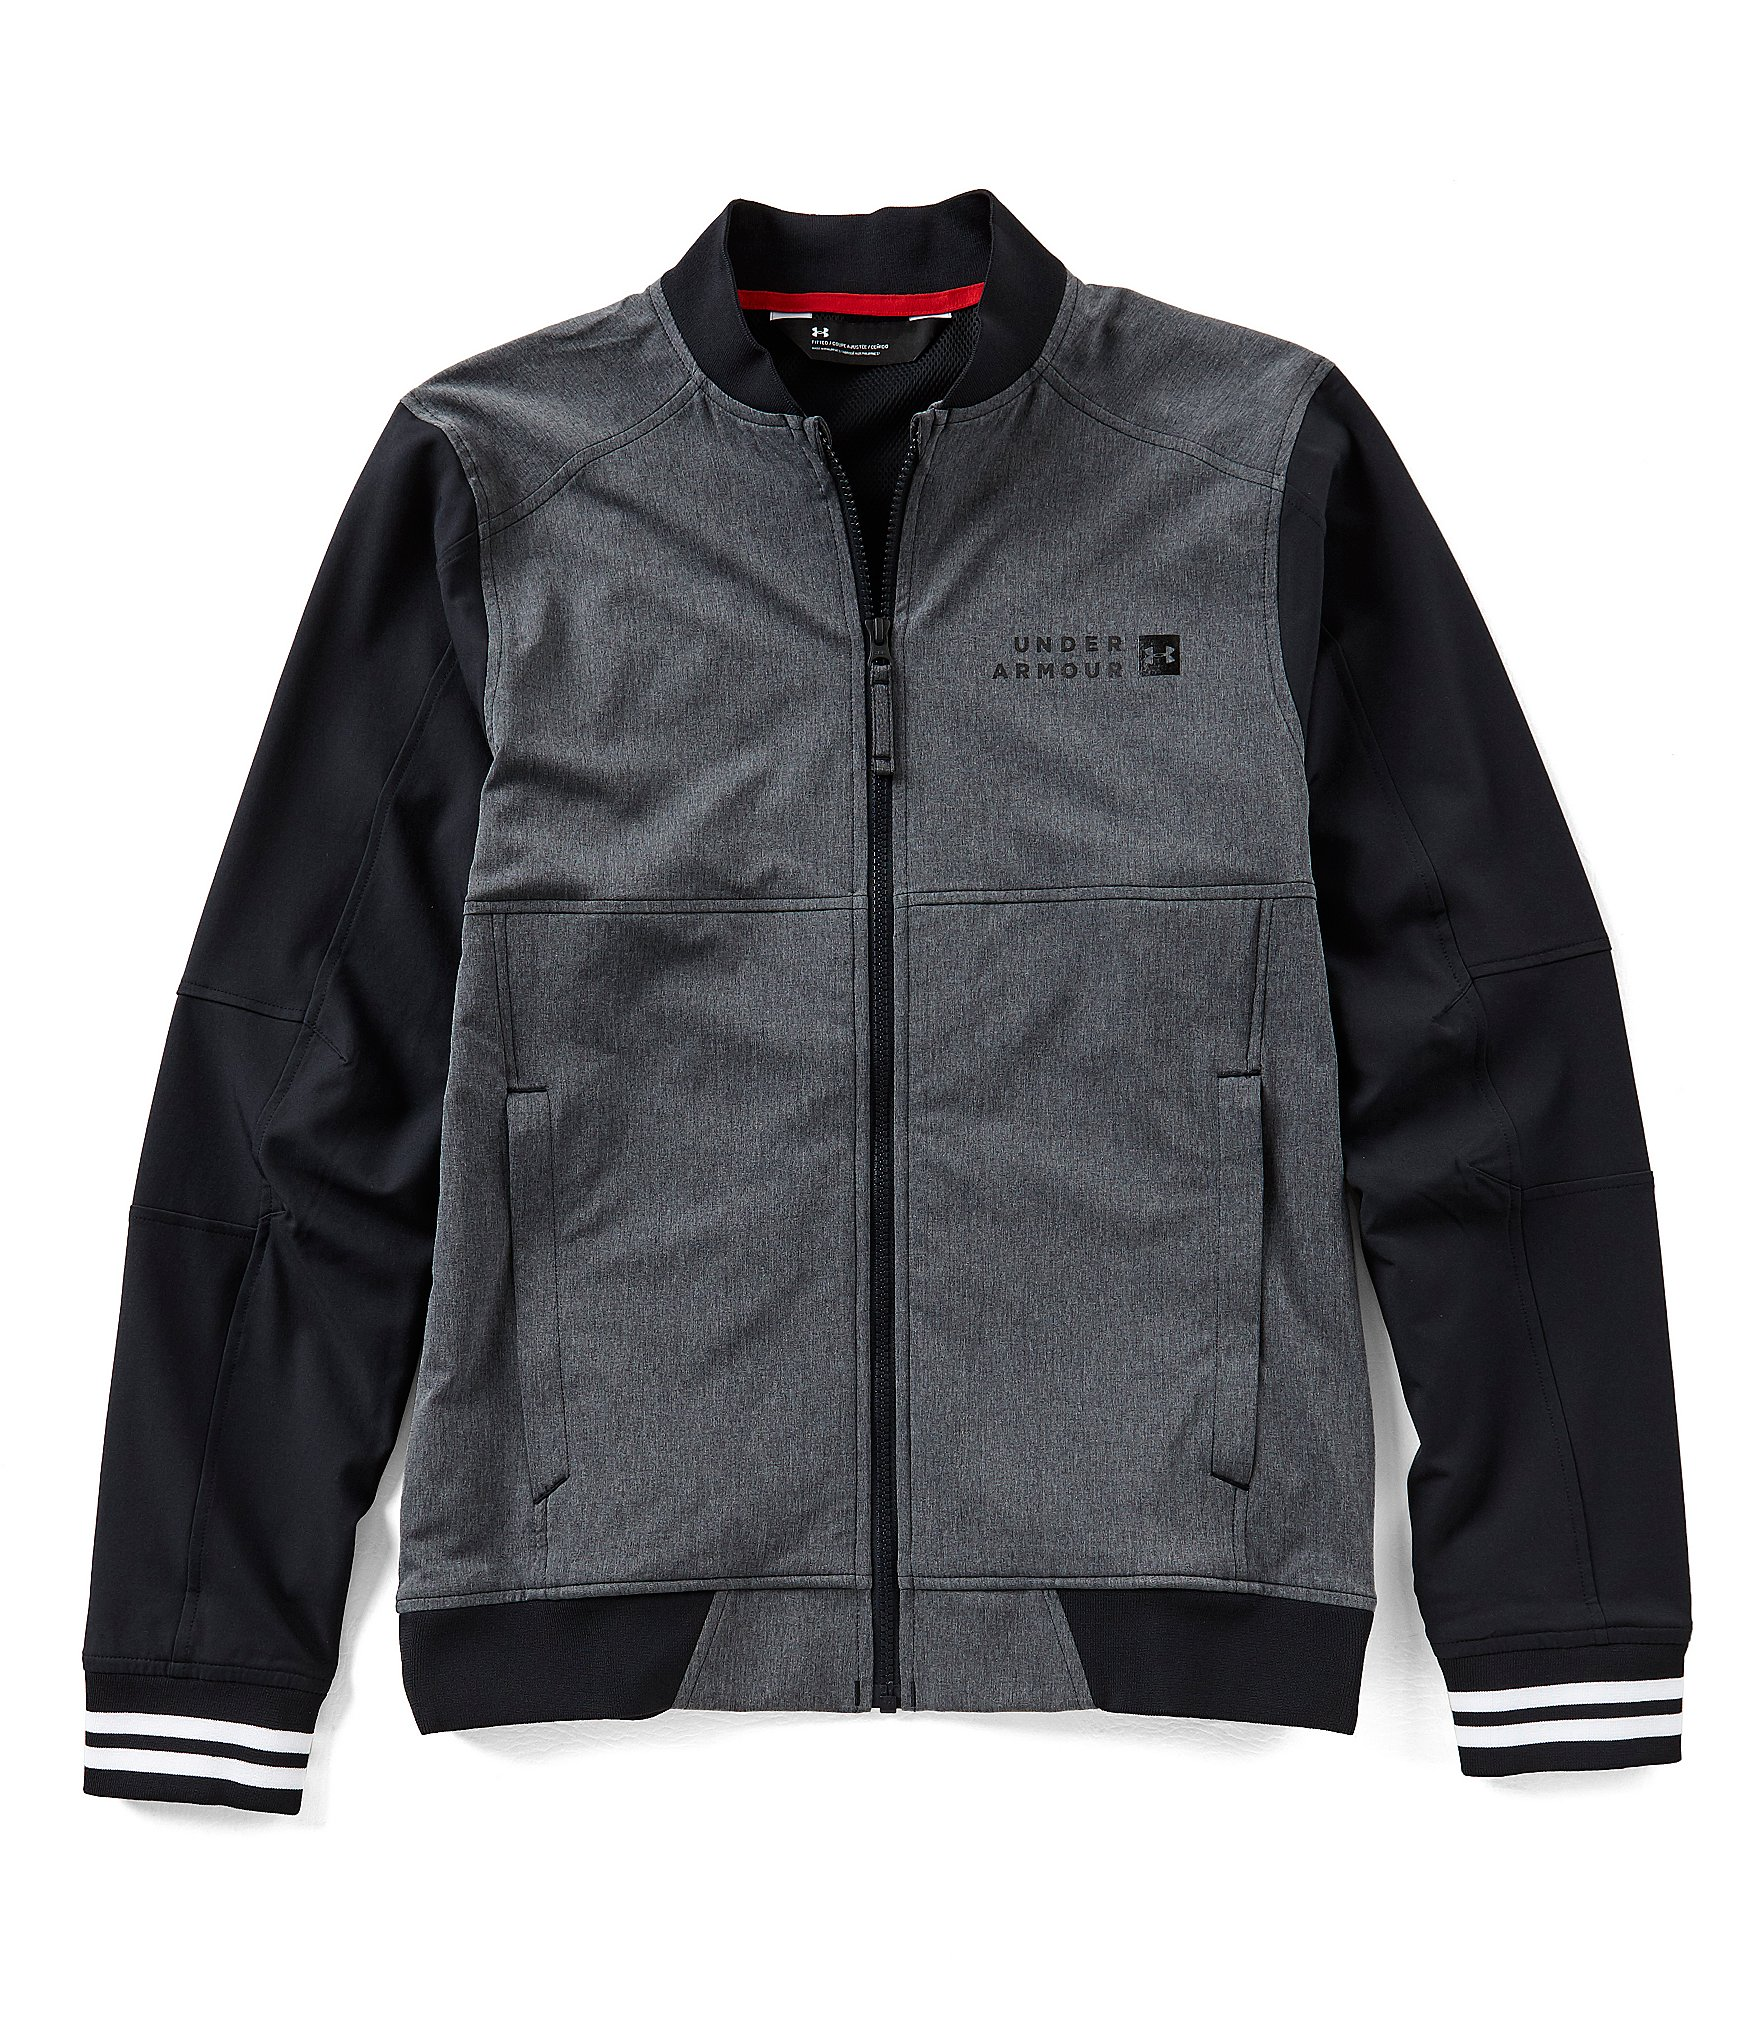 cheap under armour jacket  black